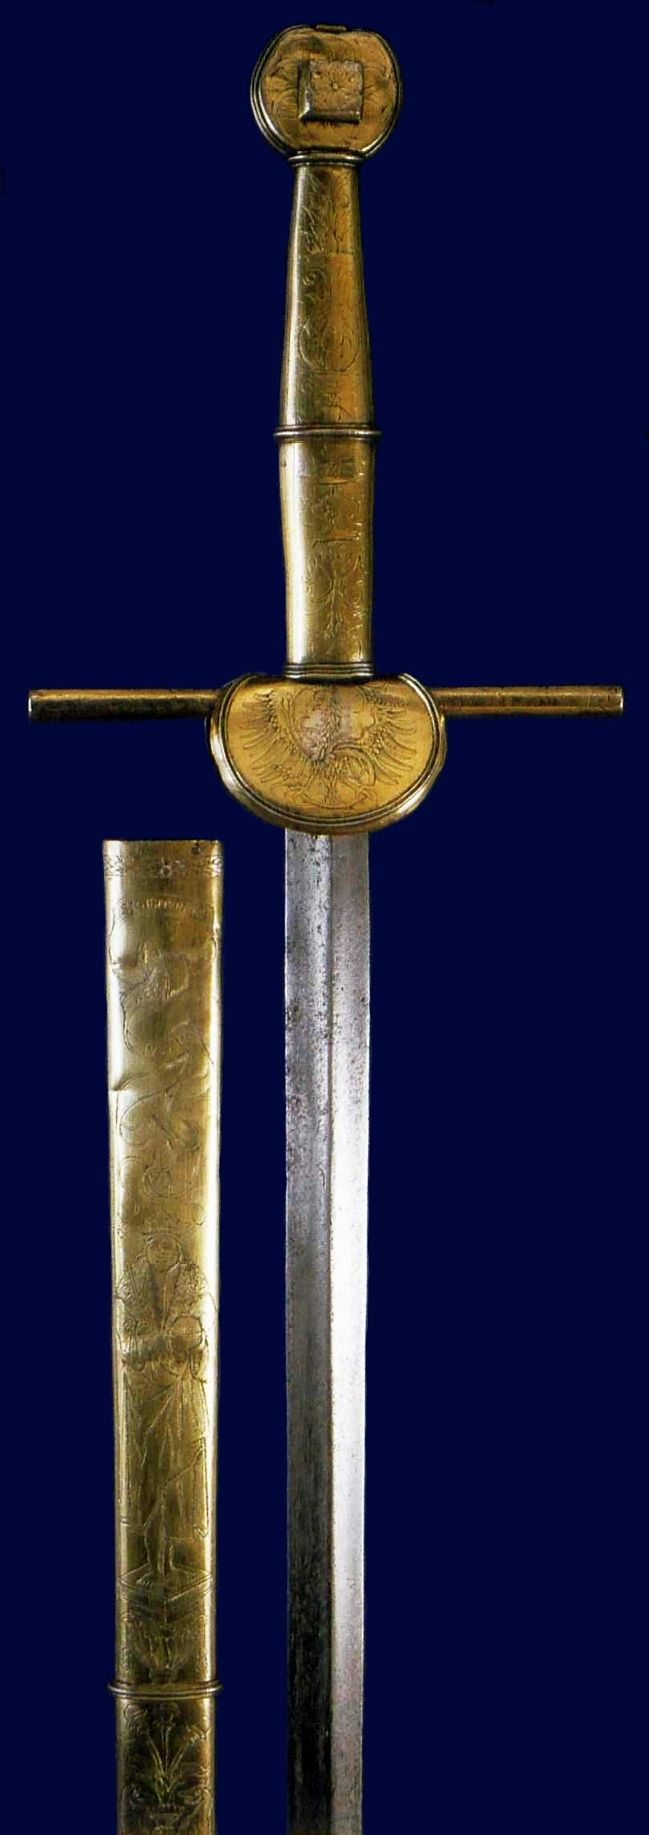 Koncerz sword of Sigismund the Old decorated with etched Renaissance ornament by Anonymous from Kraków, ca. 1520, Zamek Królewski na Wawelu, originally used as the sword of justice, later used in the ennoblement of knights